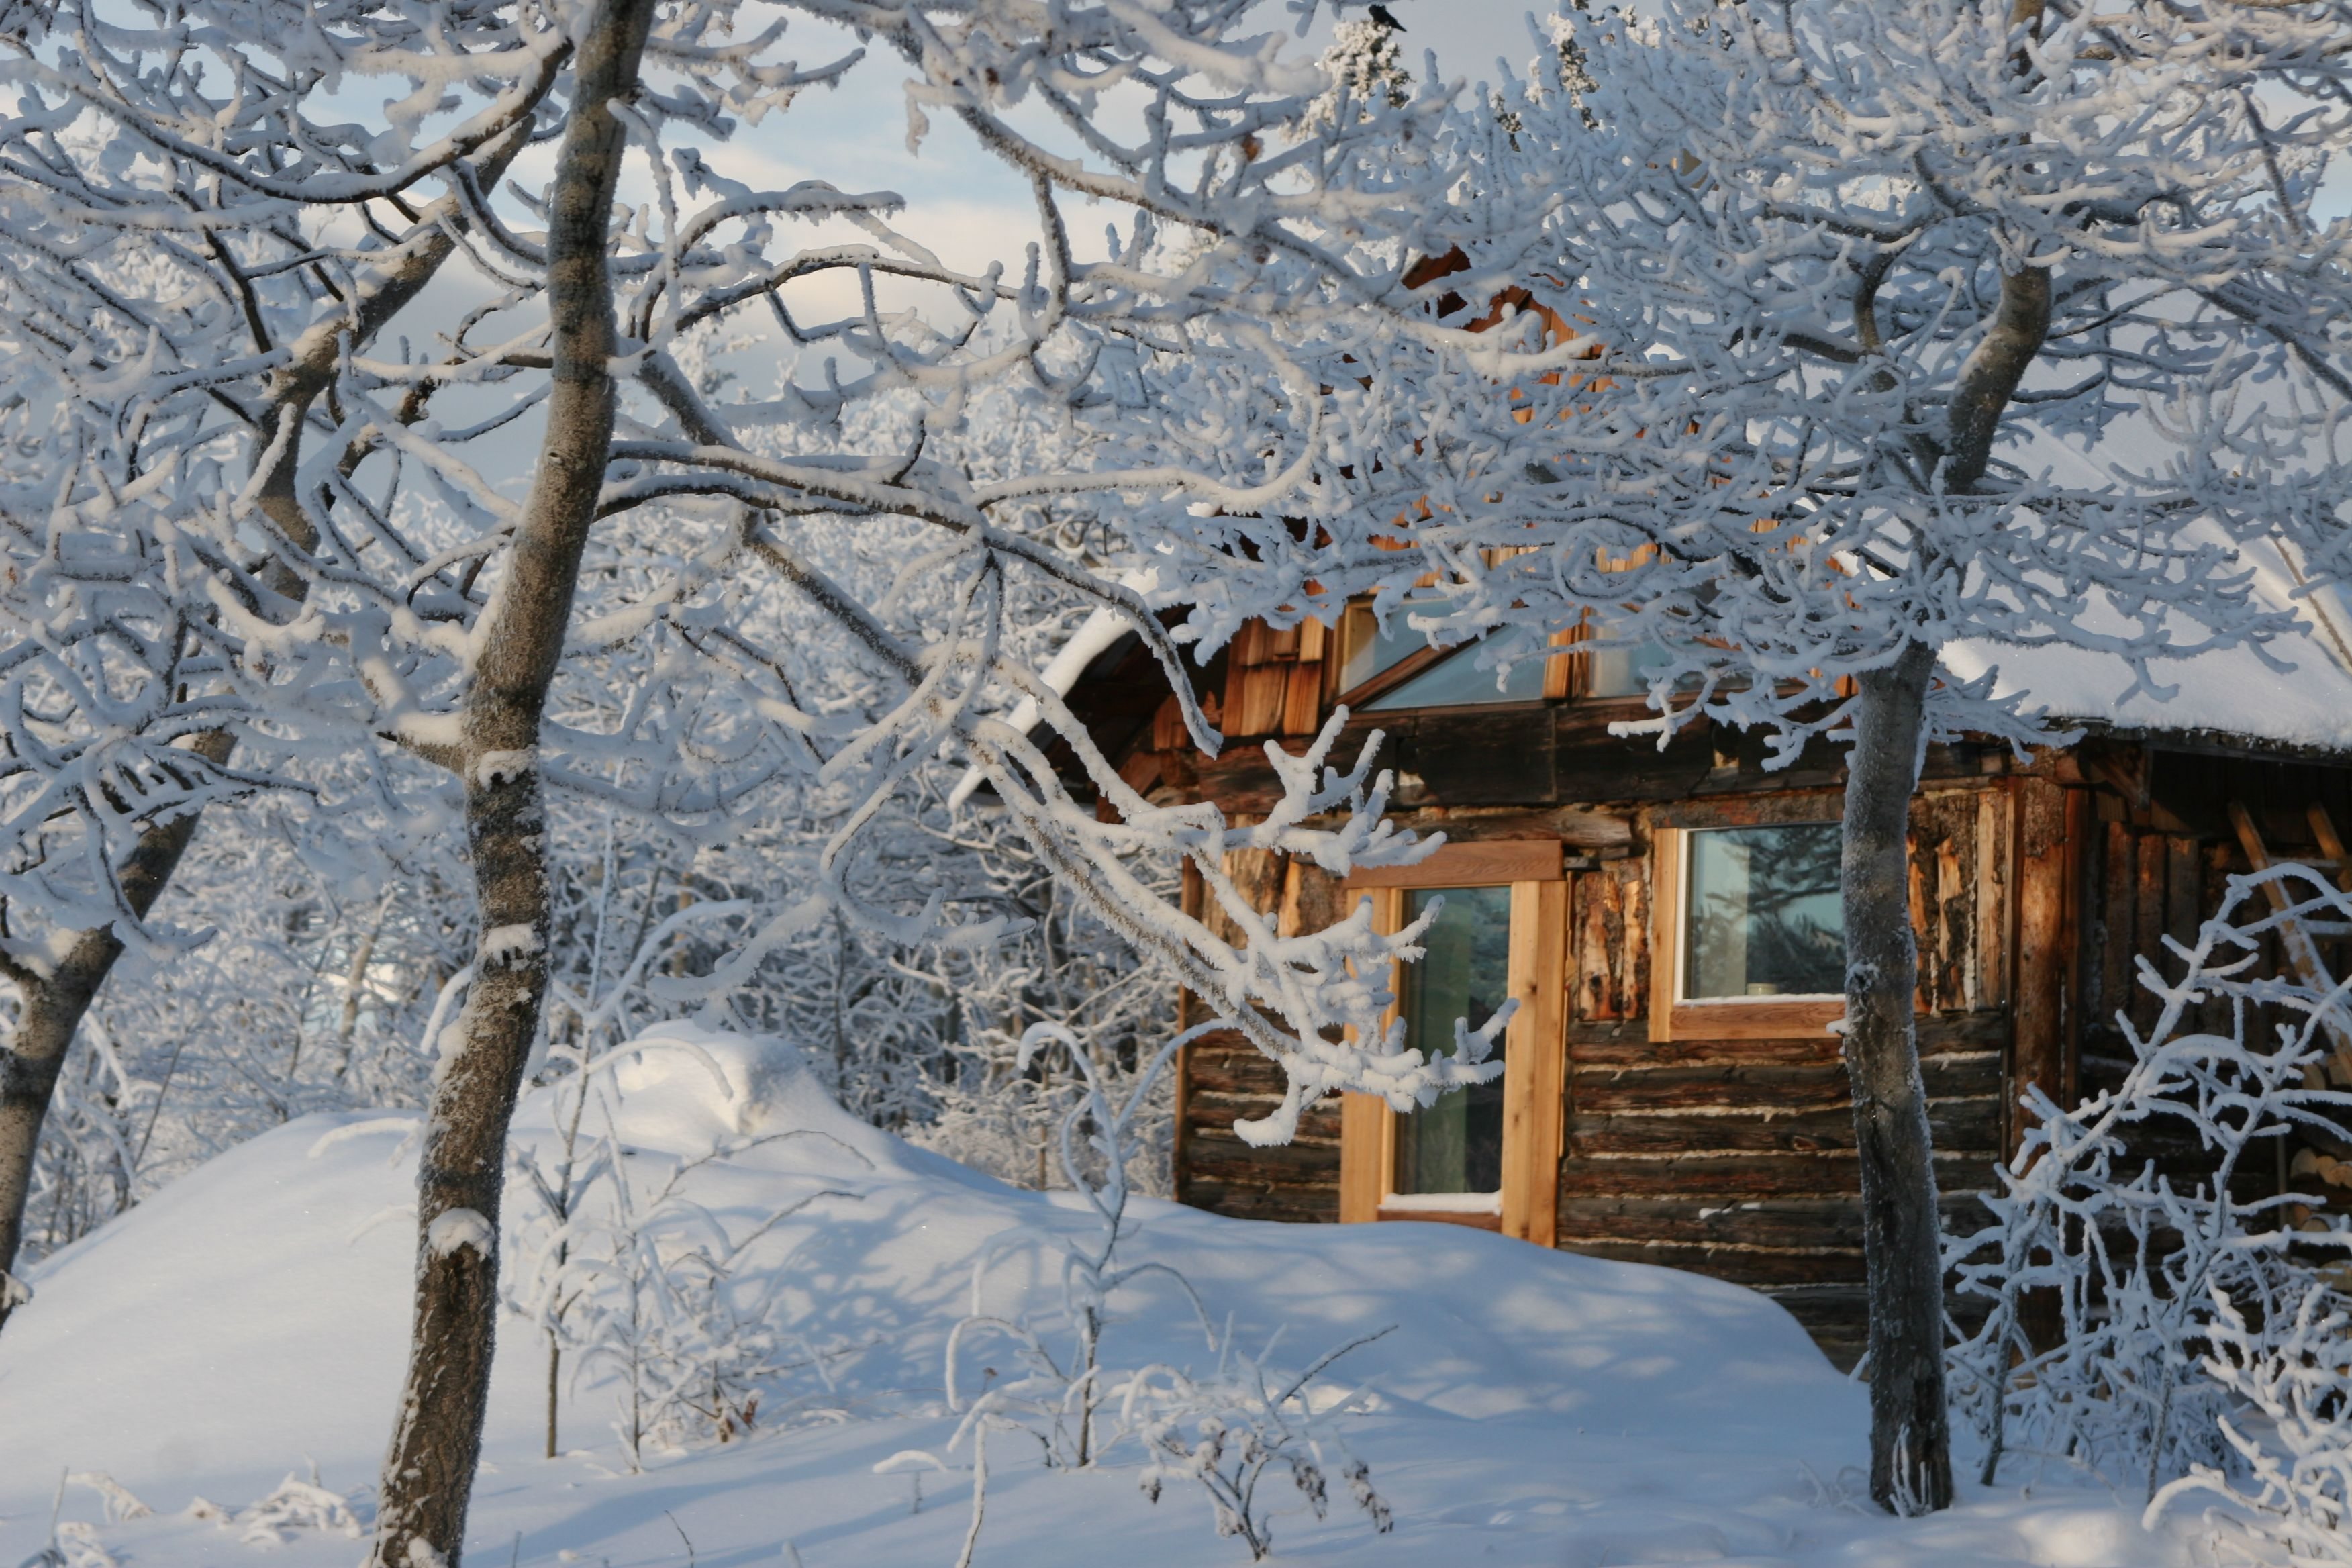 The Cosy Cabin in Winter.